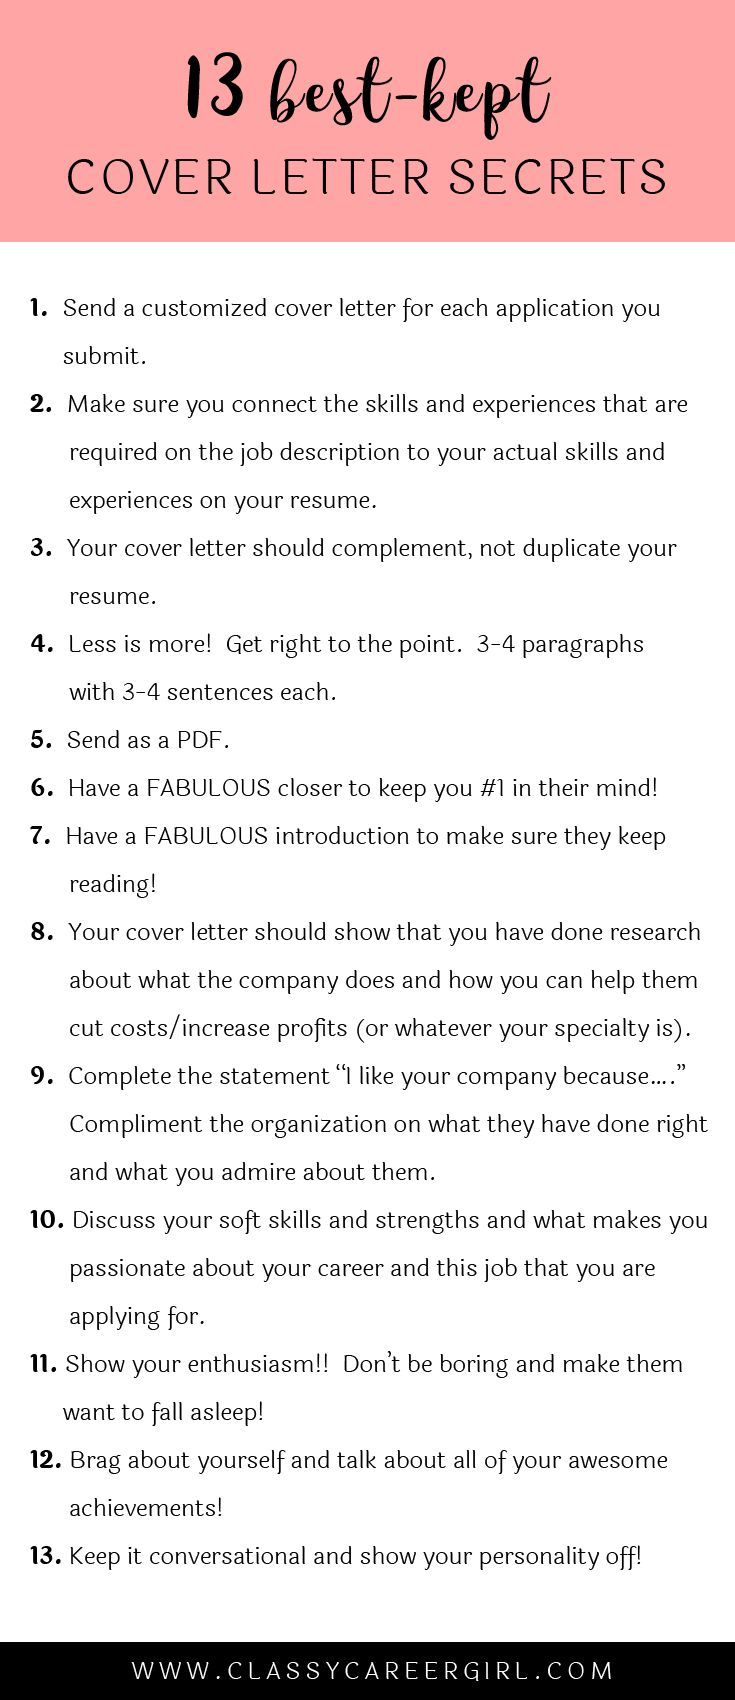 Cover Letter Advice Cool The 13 Bestkept Cover Letter Secrets  Small Things Career Decorating Inspiration